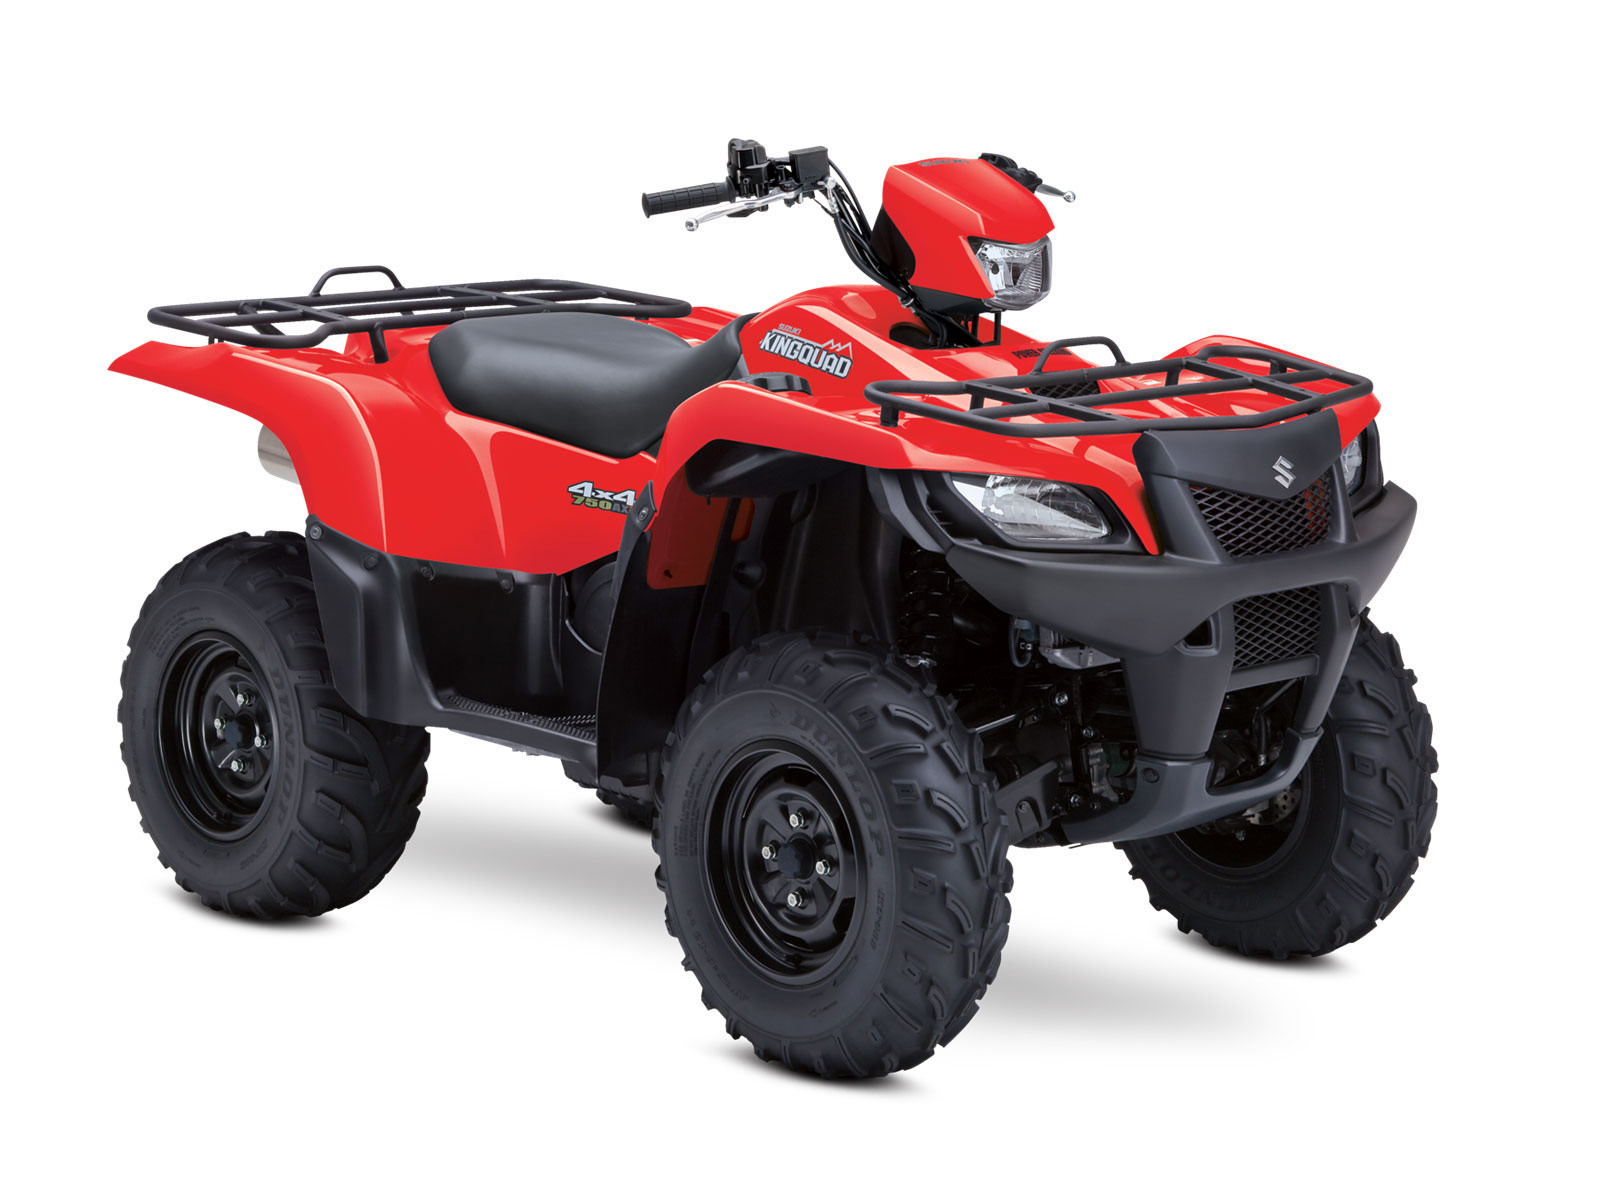 kingquad 750axi power steering 2012 suzuki atv pictures. Black Bedroom Furniture Sets. Home Design Ideas